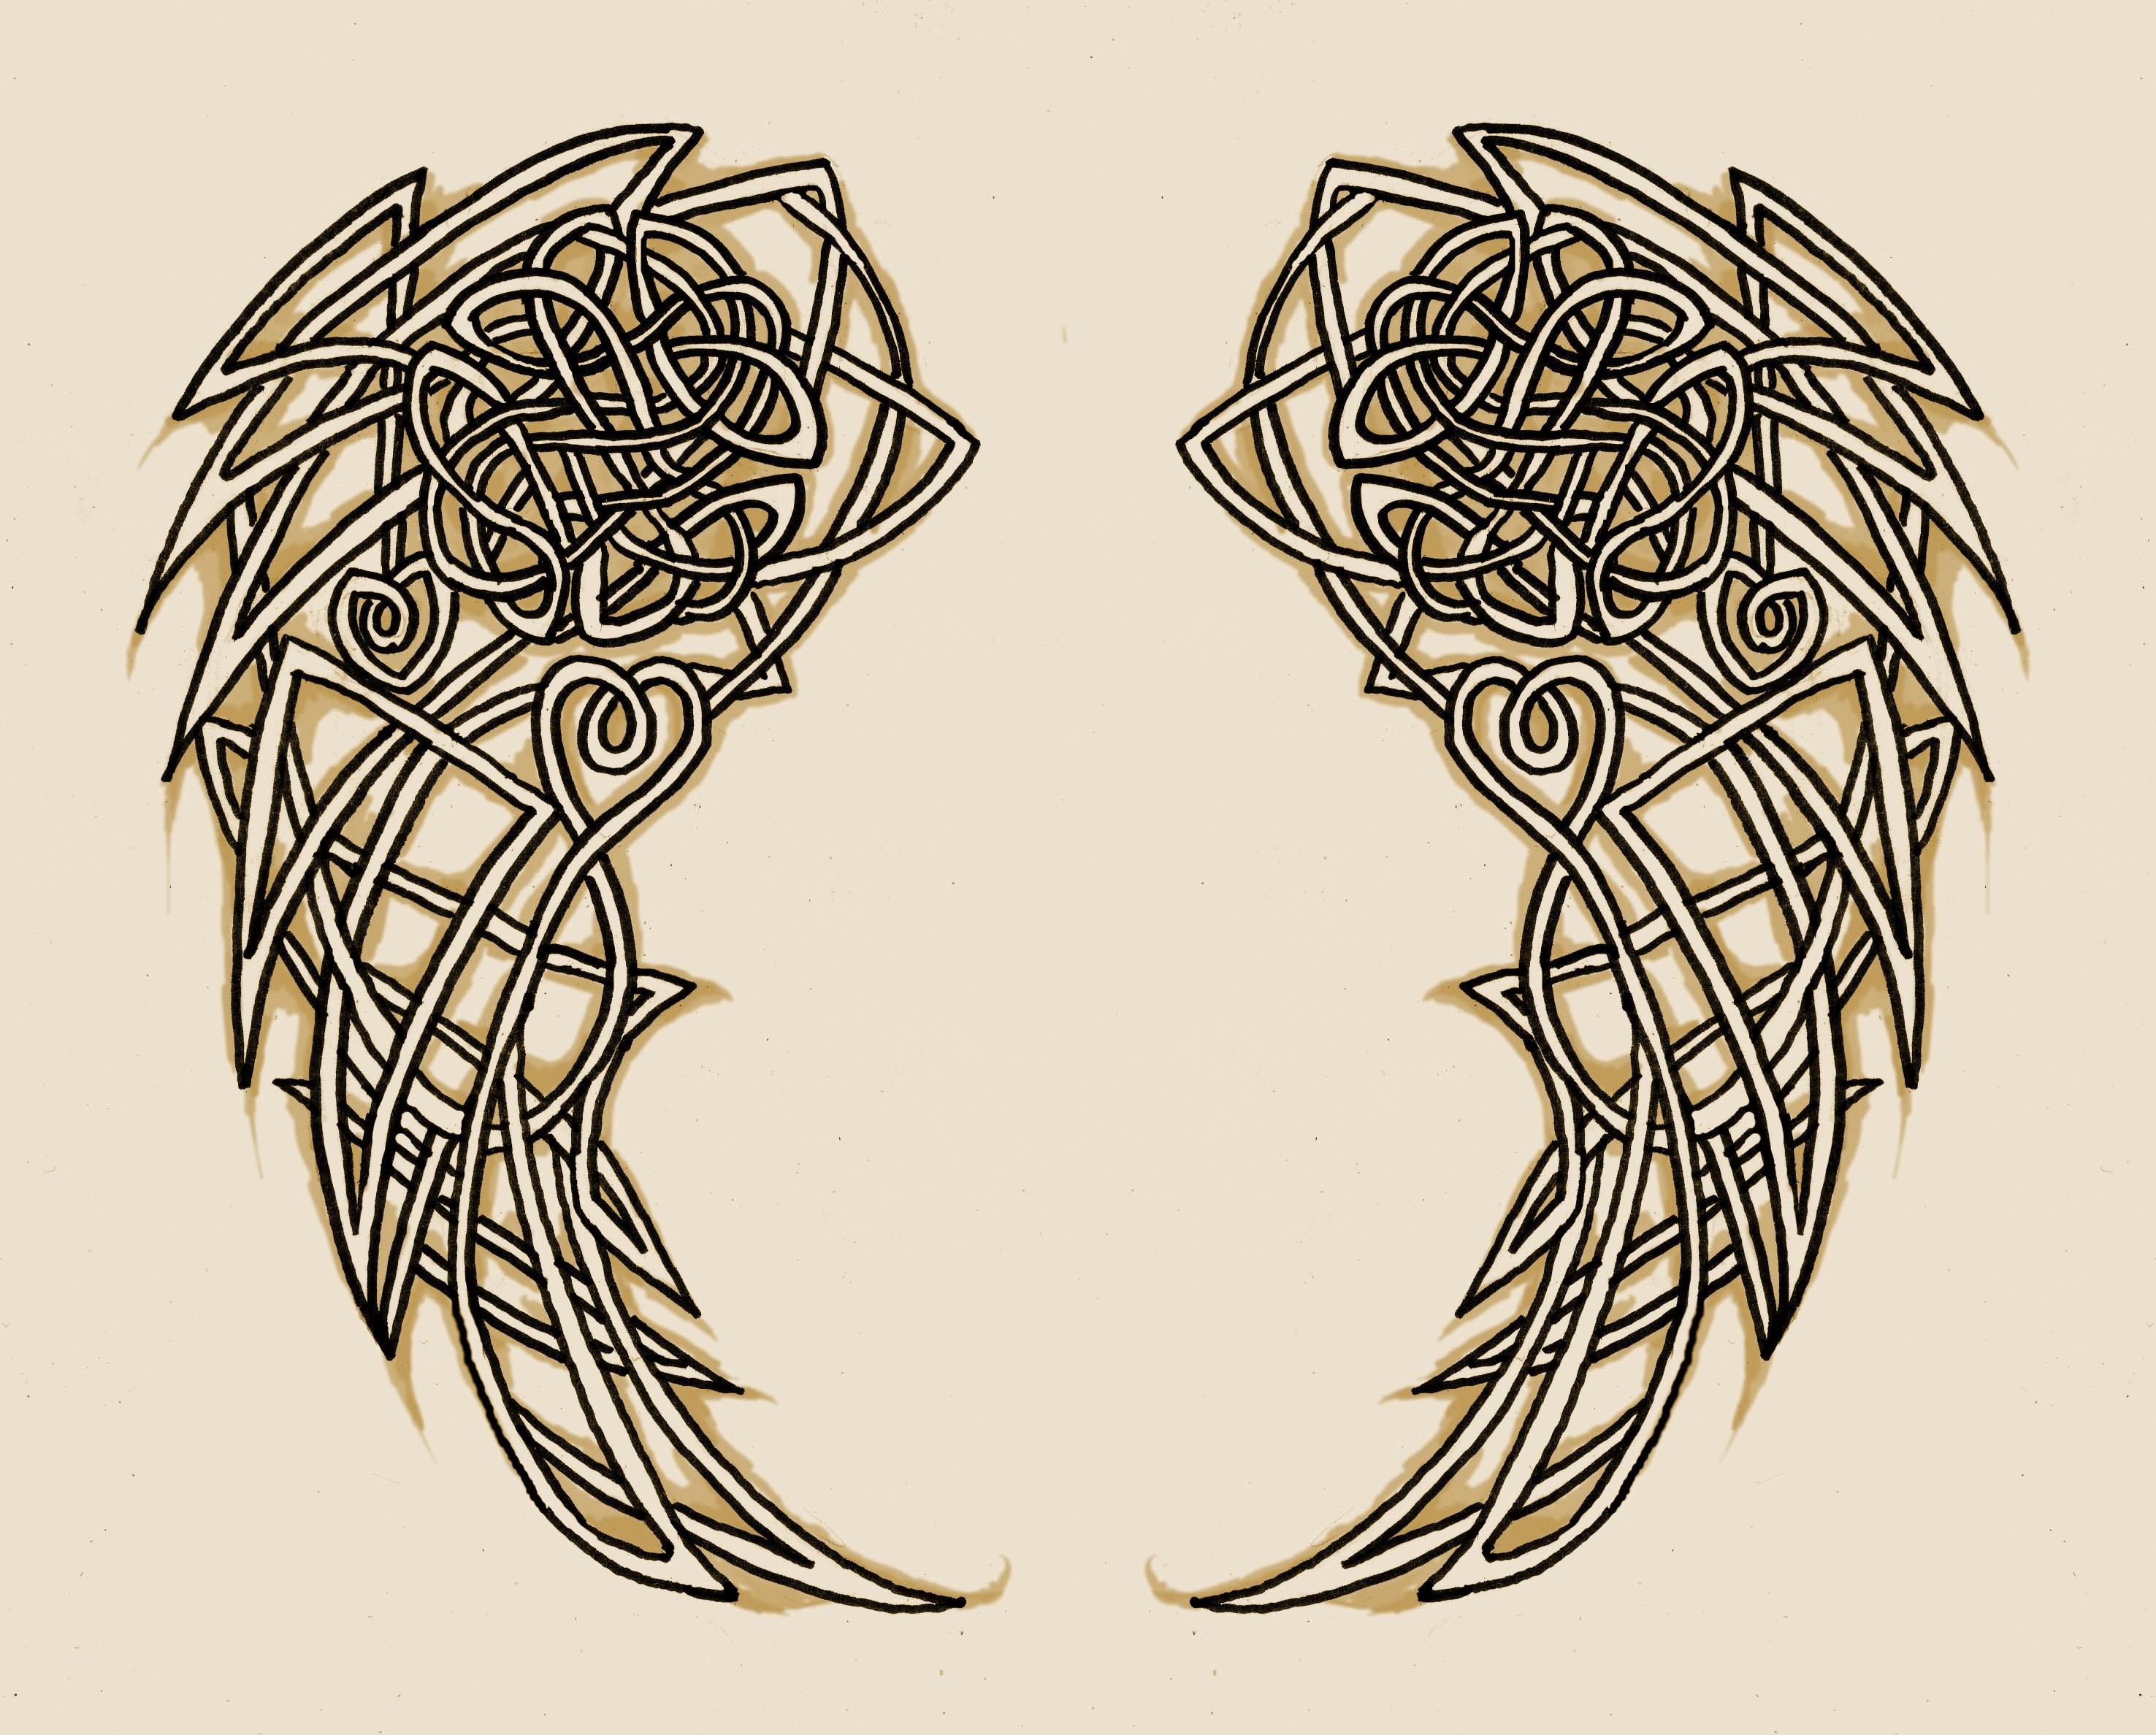 Celtic Knot Wings Tattoo Design By Torvald2000